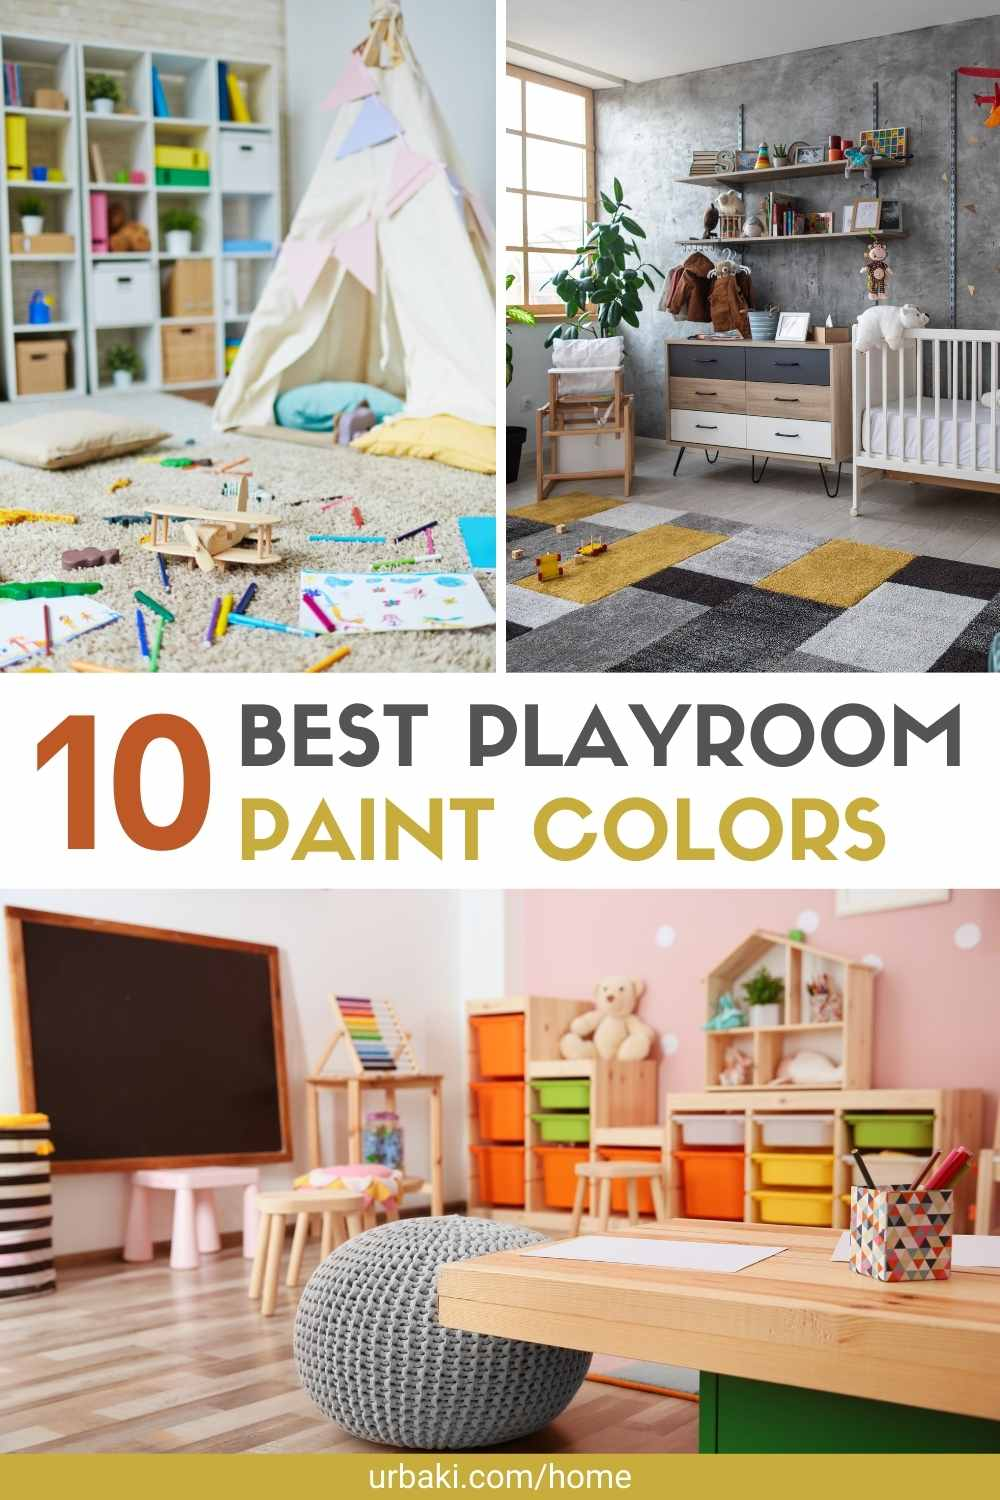 Playroom Paint Colors